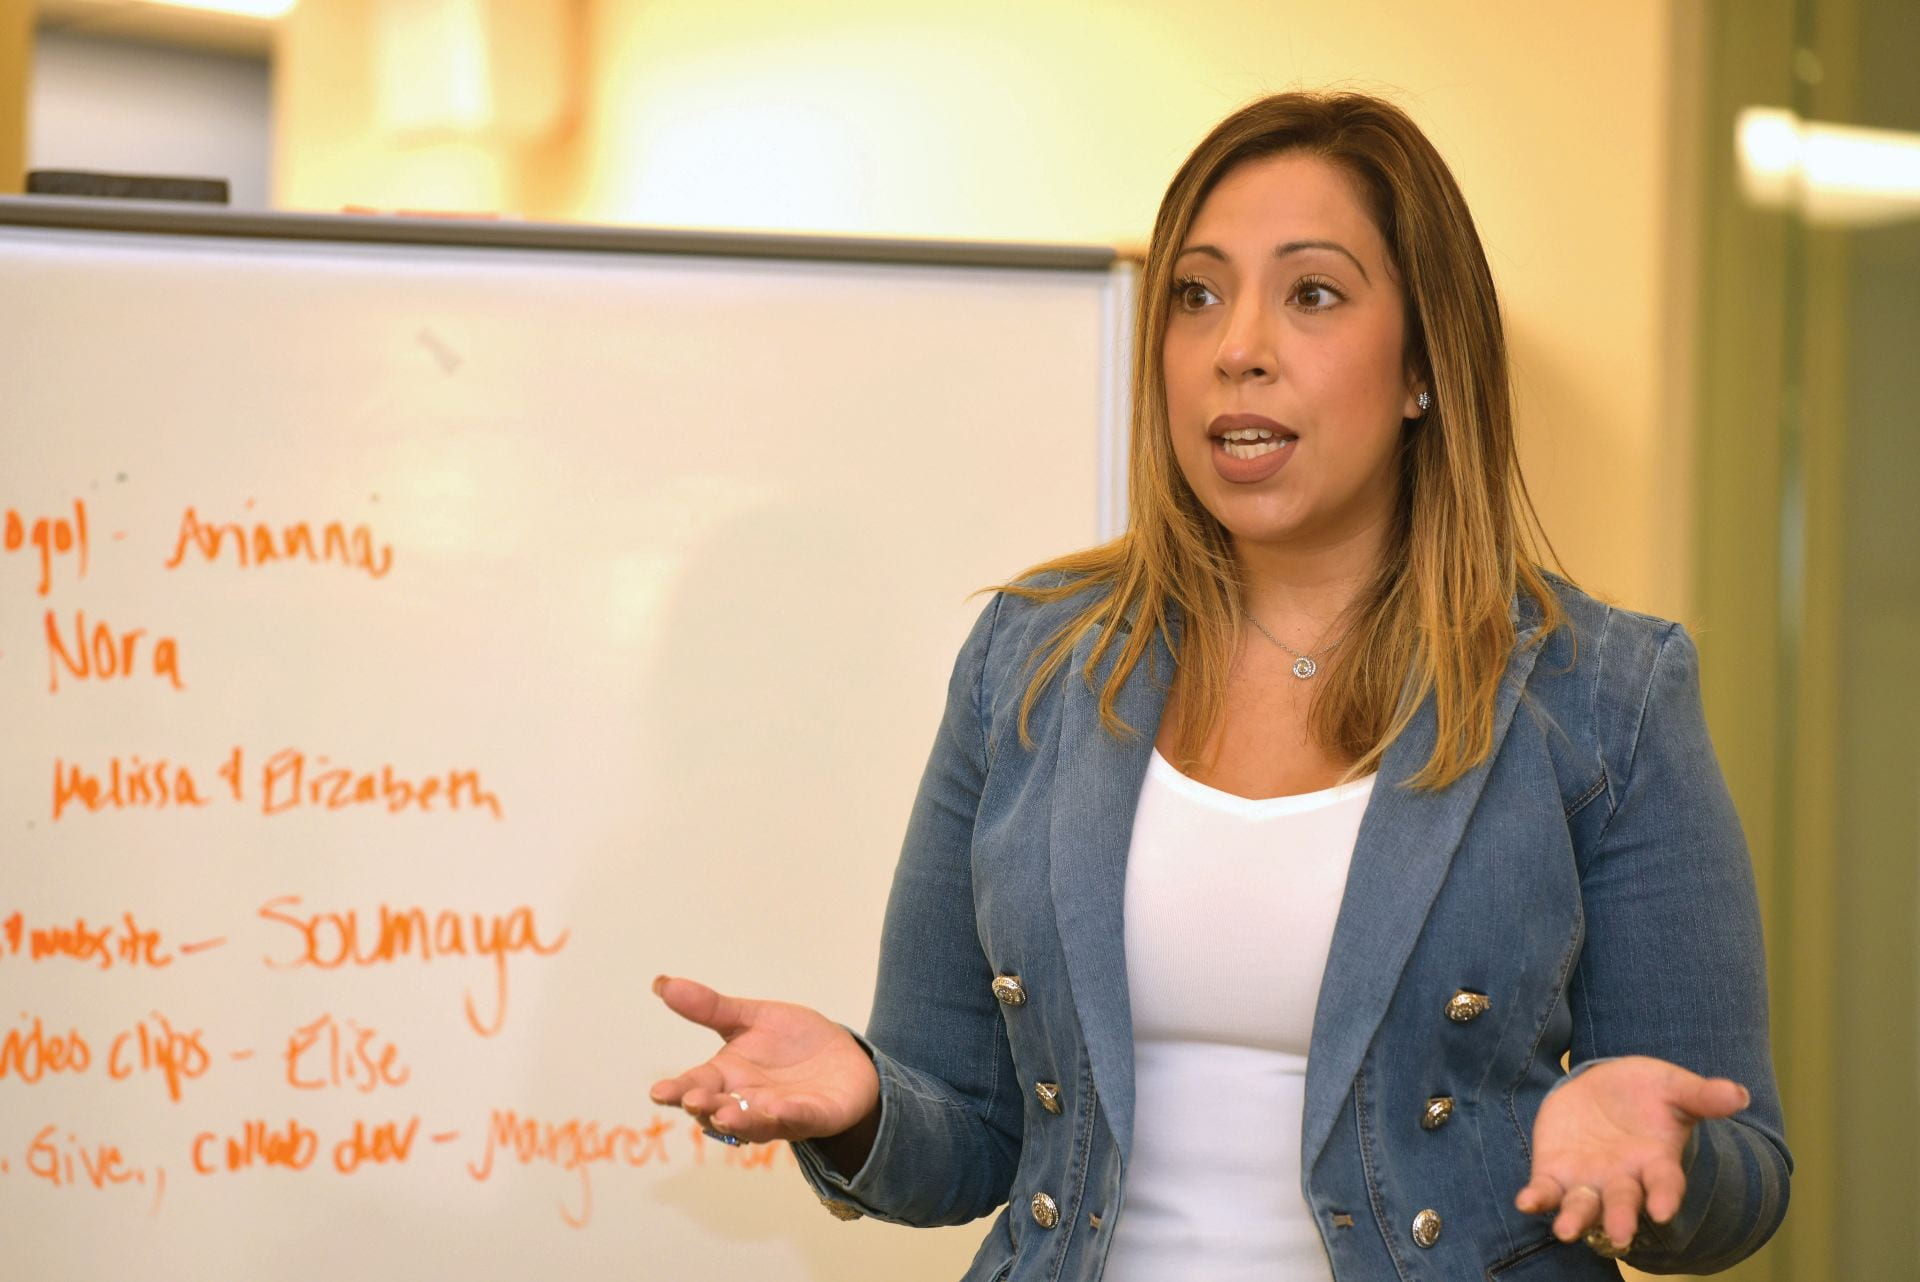 WEI committee member Diana Rodriguez led a session on company culture